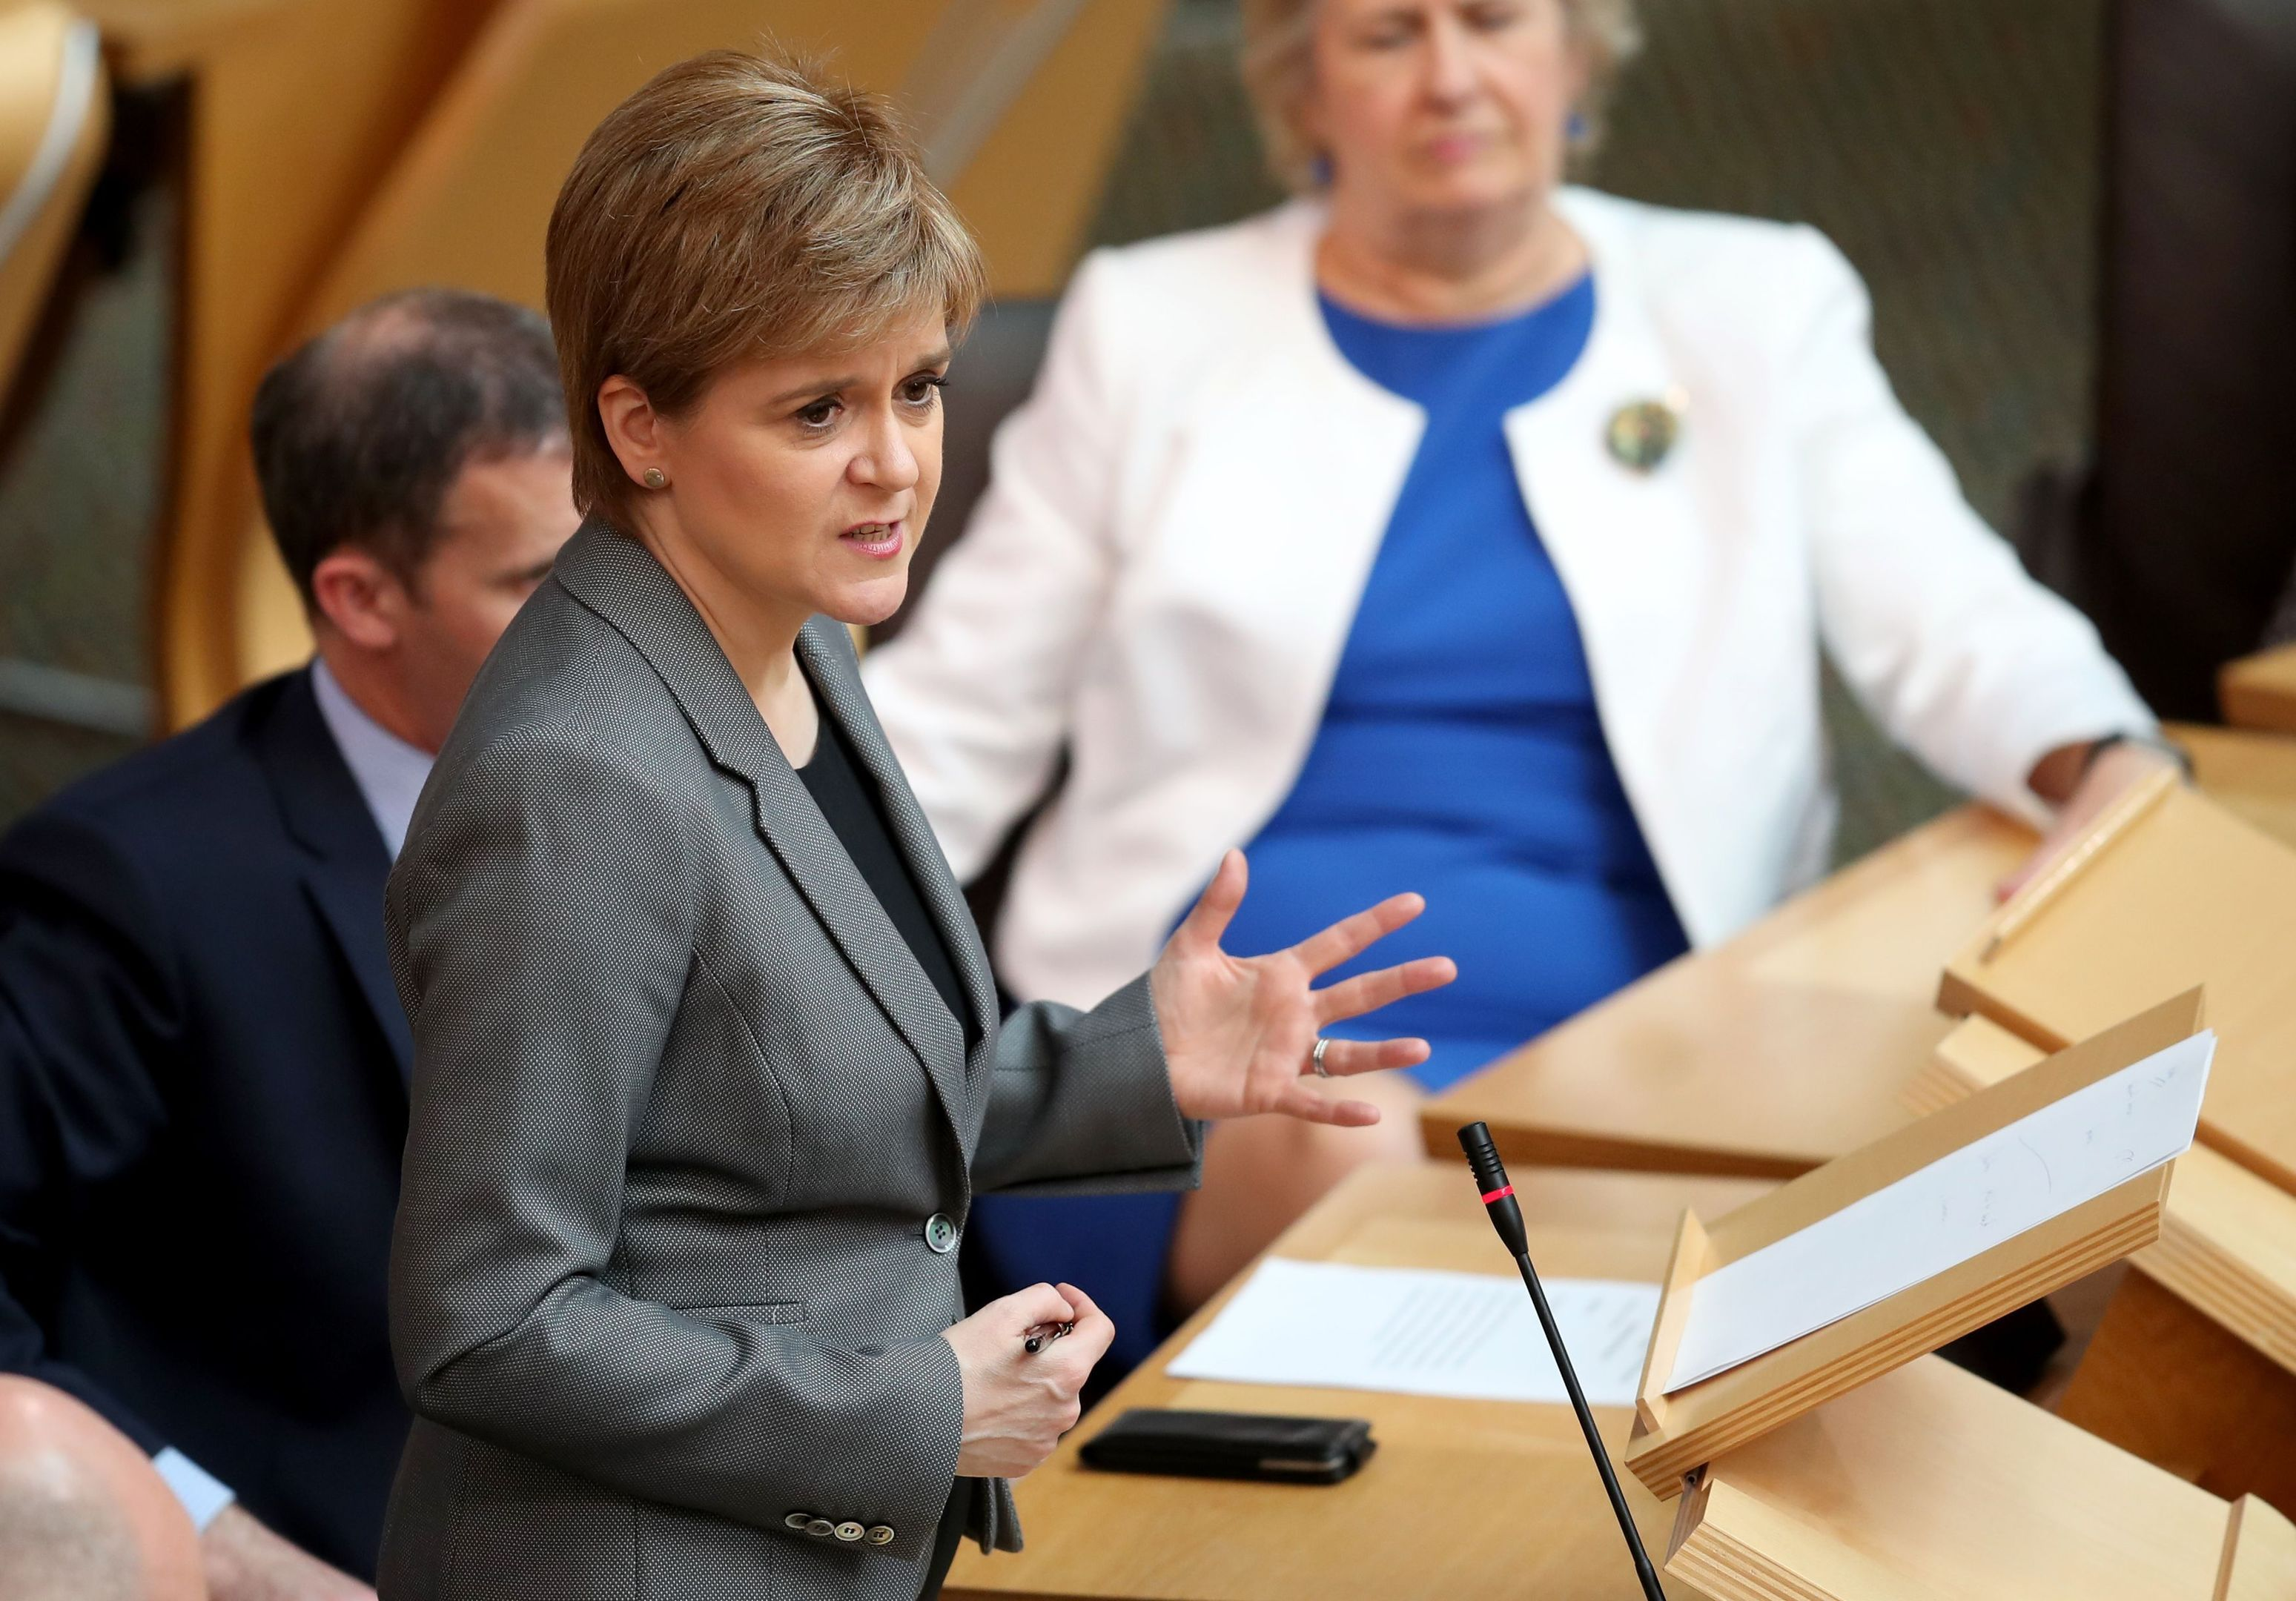 First Minister Nicola Sturgeon delivers her Security in Scotland statement to MSPs in the main chamber of the Scottish Parliament.